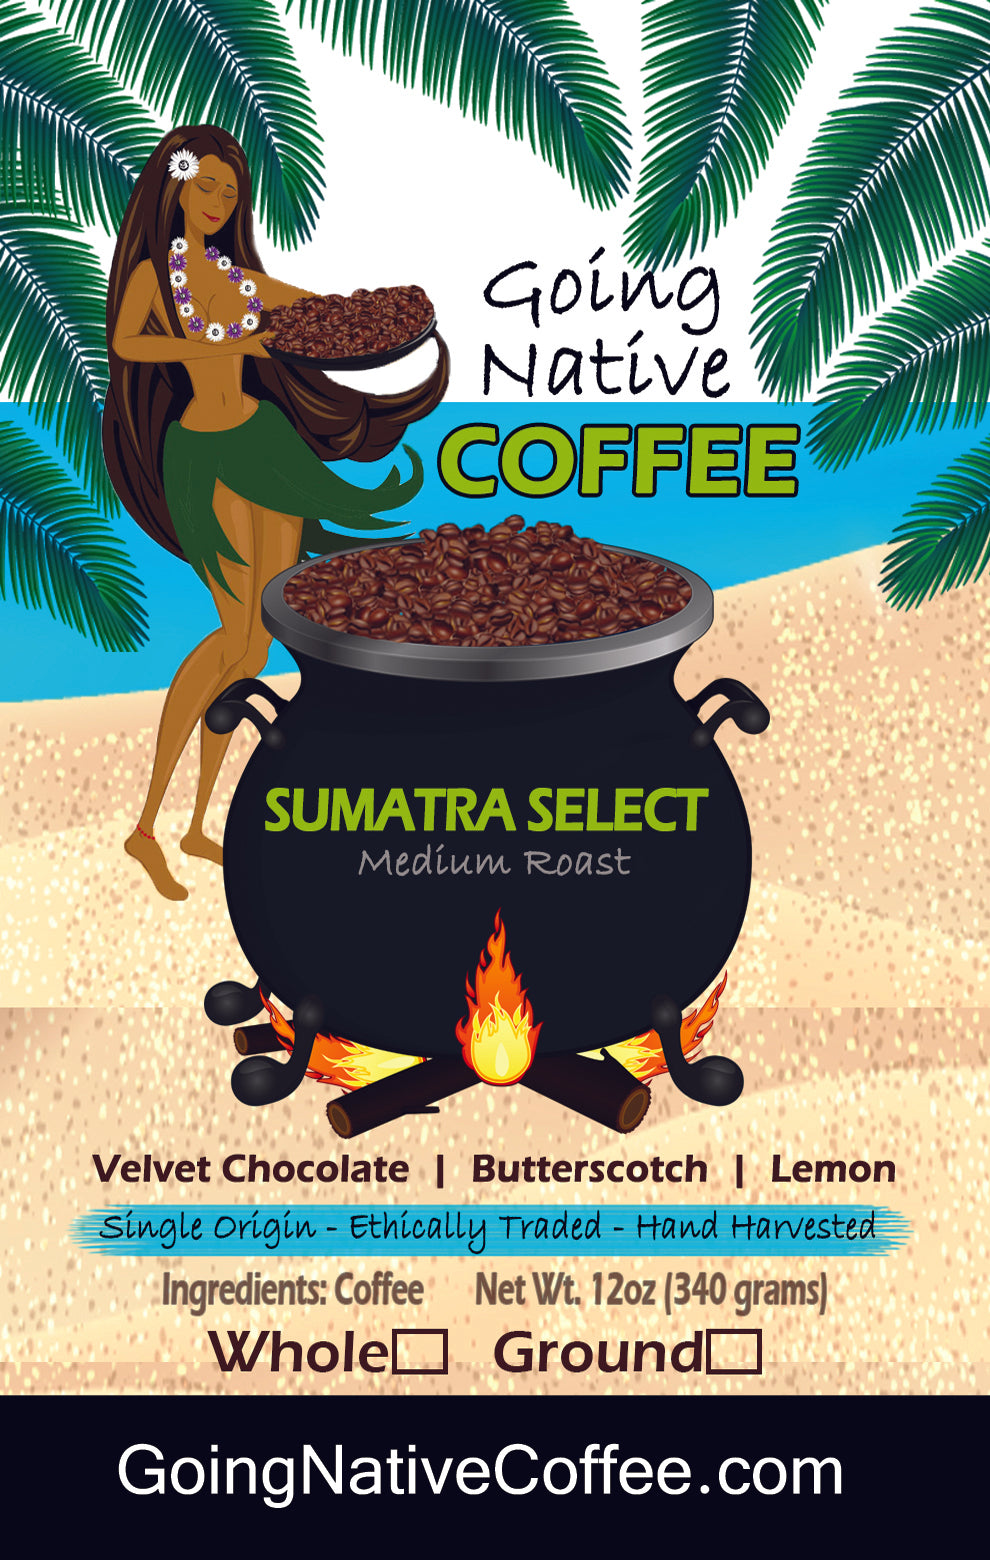 Sumatra Select Coffee Subscription - Sumatra Bener Meriah Mandheling Gr1